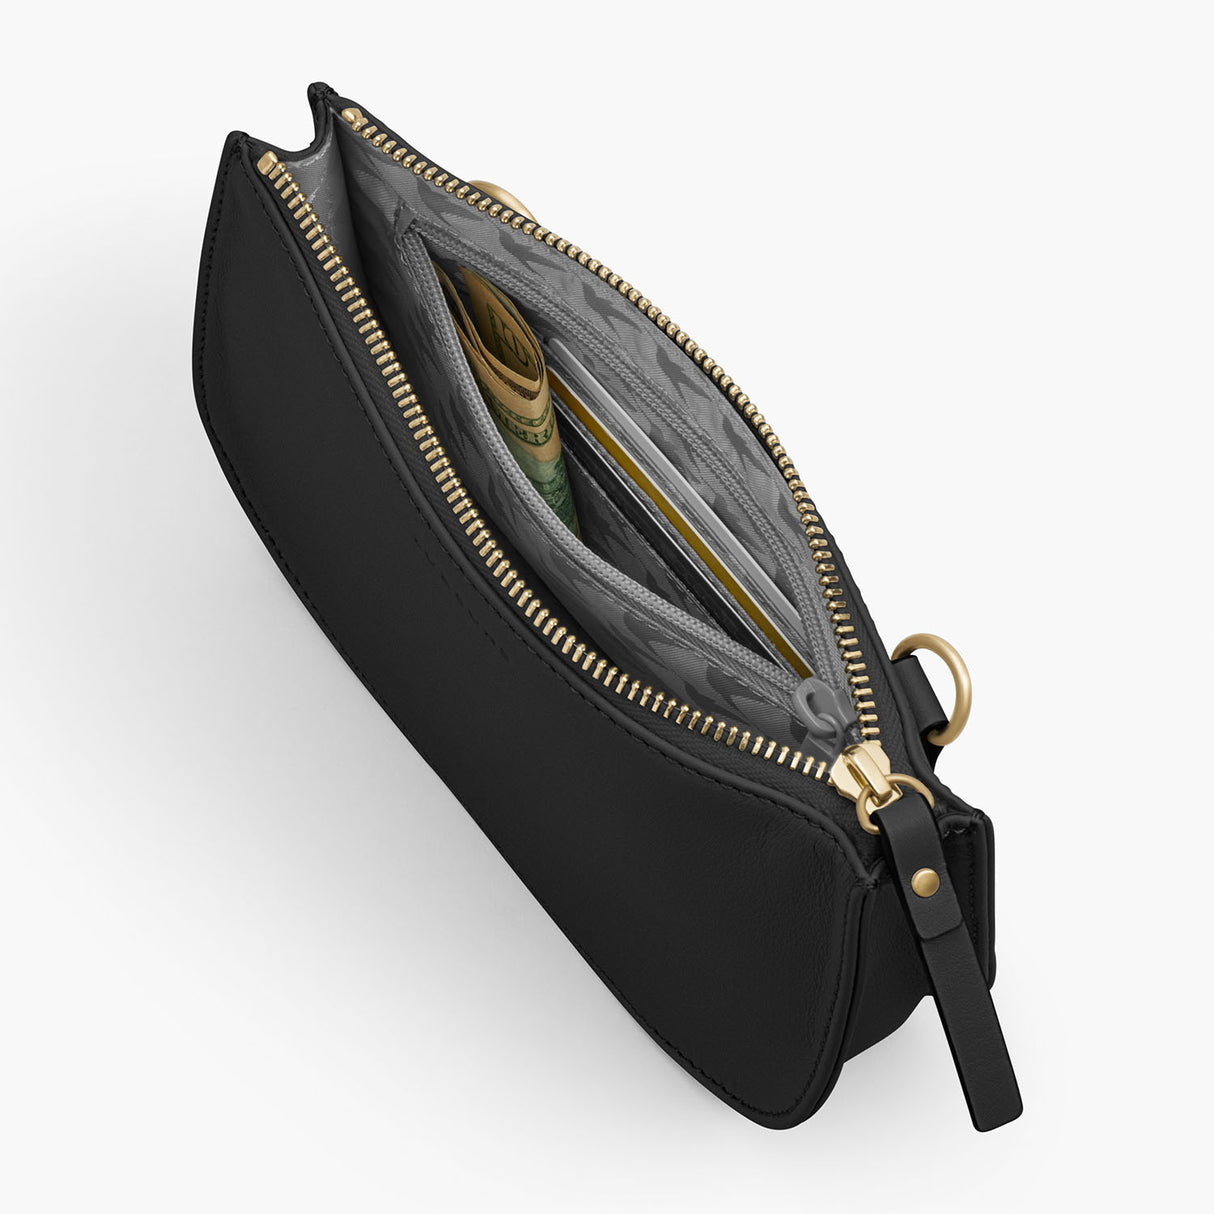 Interior Zipper - The Waverley 2 - Nappa Leather - Black / Gold / Grey - Crossbody - Lo & Sons